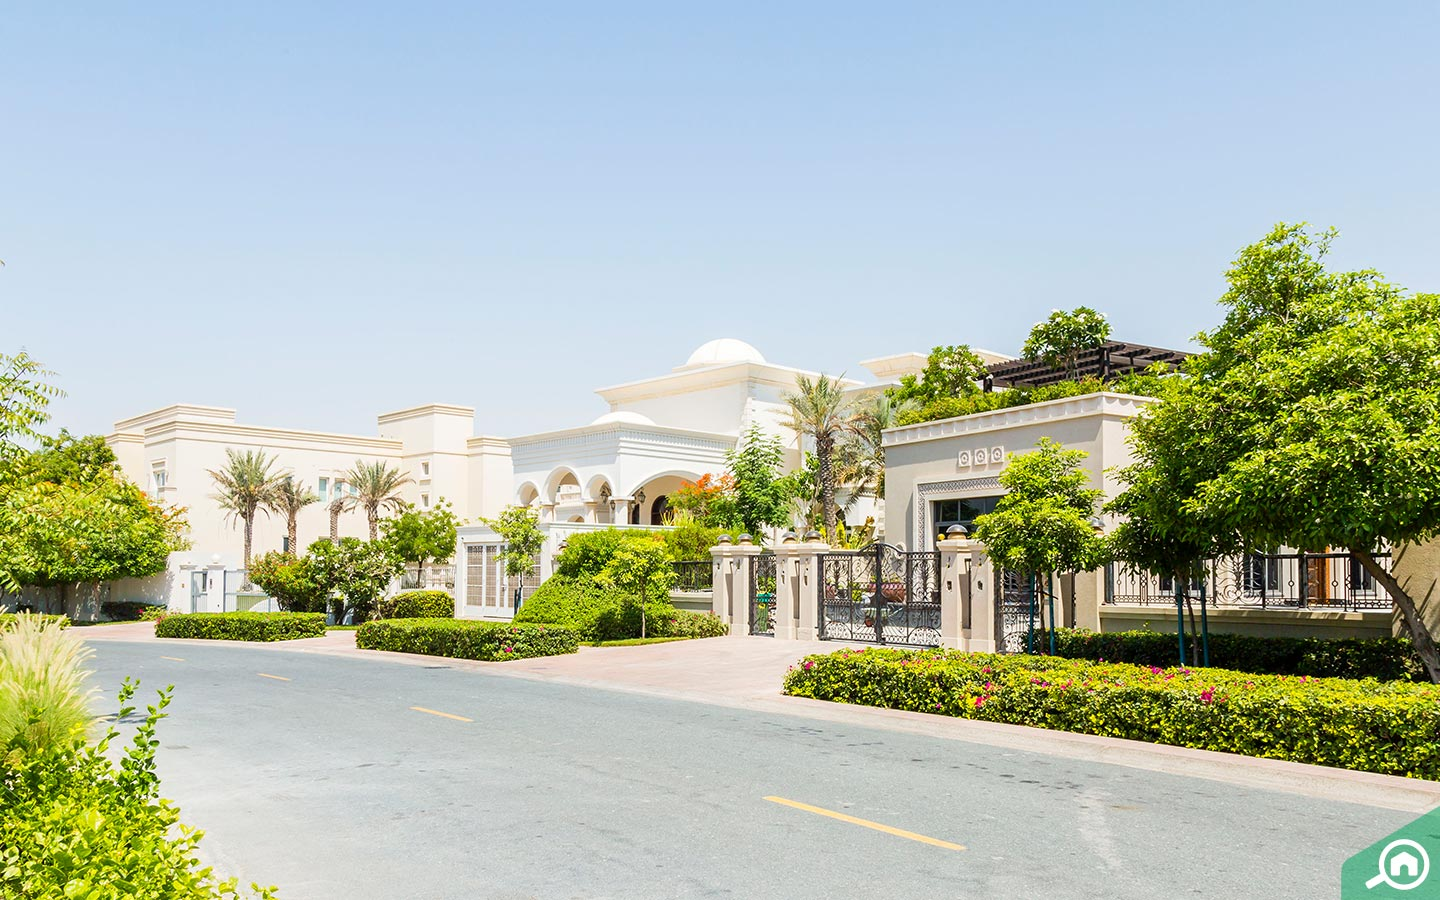 Community of Emirates Hills, which has freehold villas in Dubai